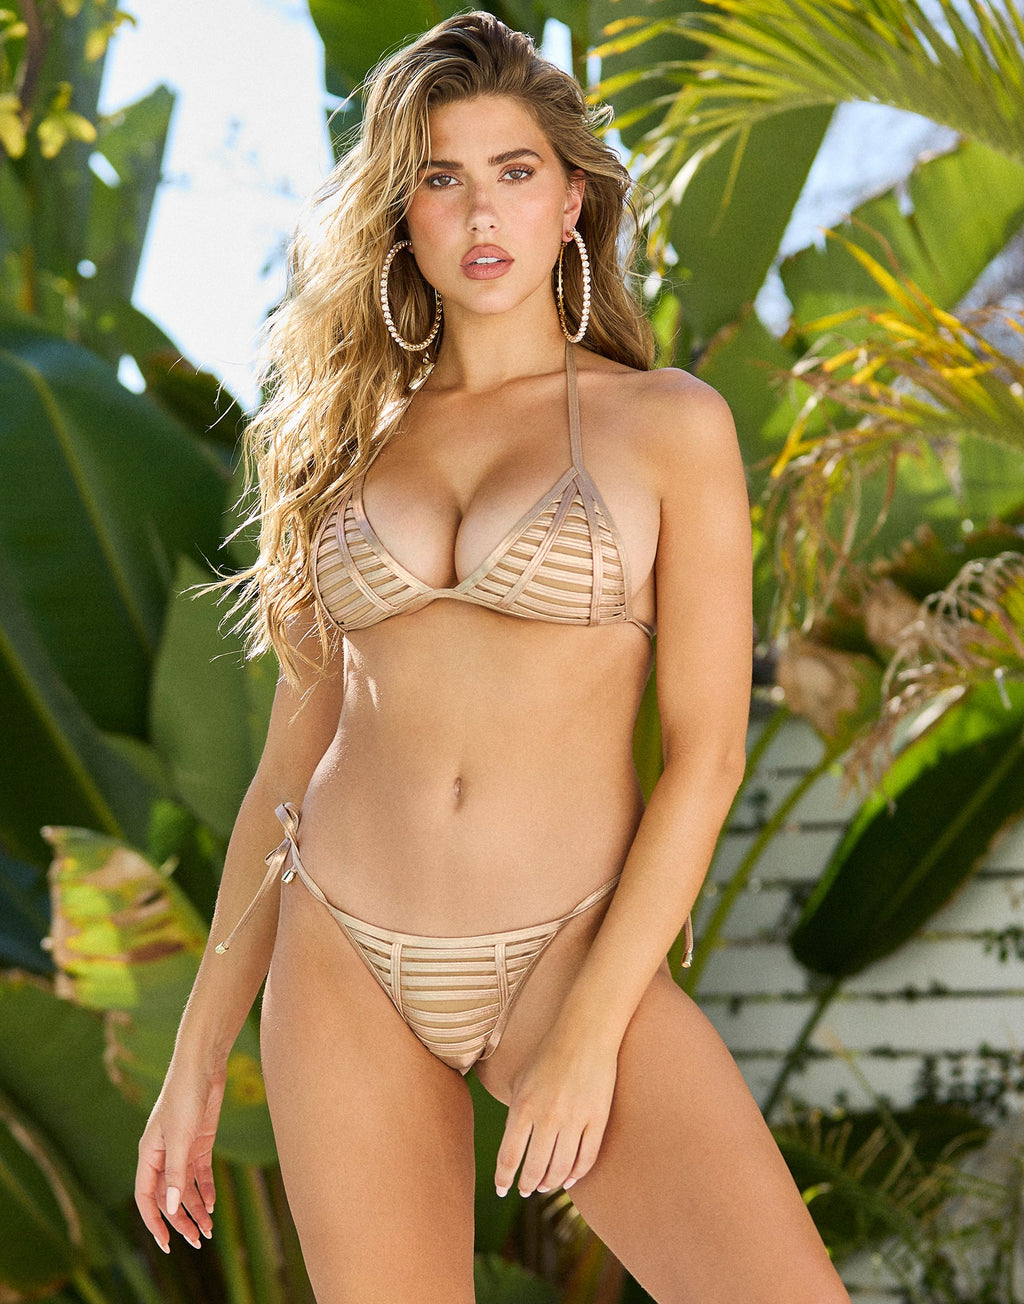 Hard Summer Triangle Bikini Top in Rose Gold with Nude Lining - Front View